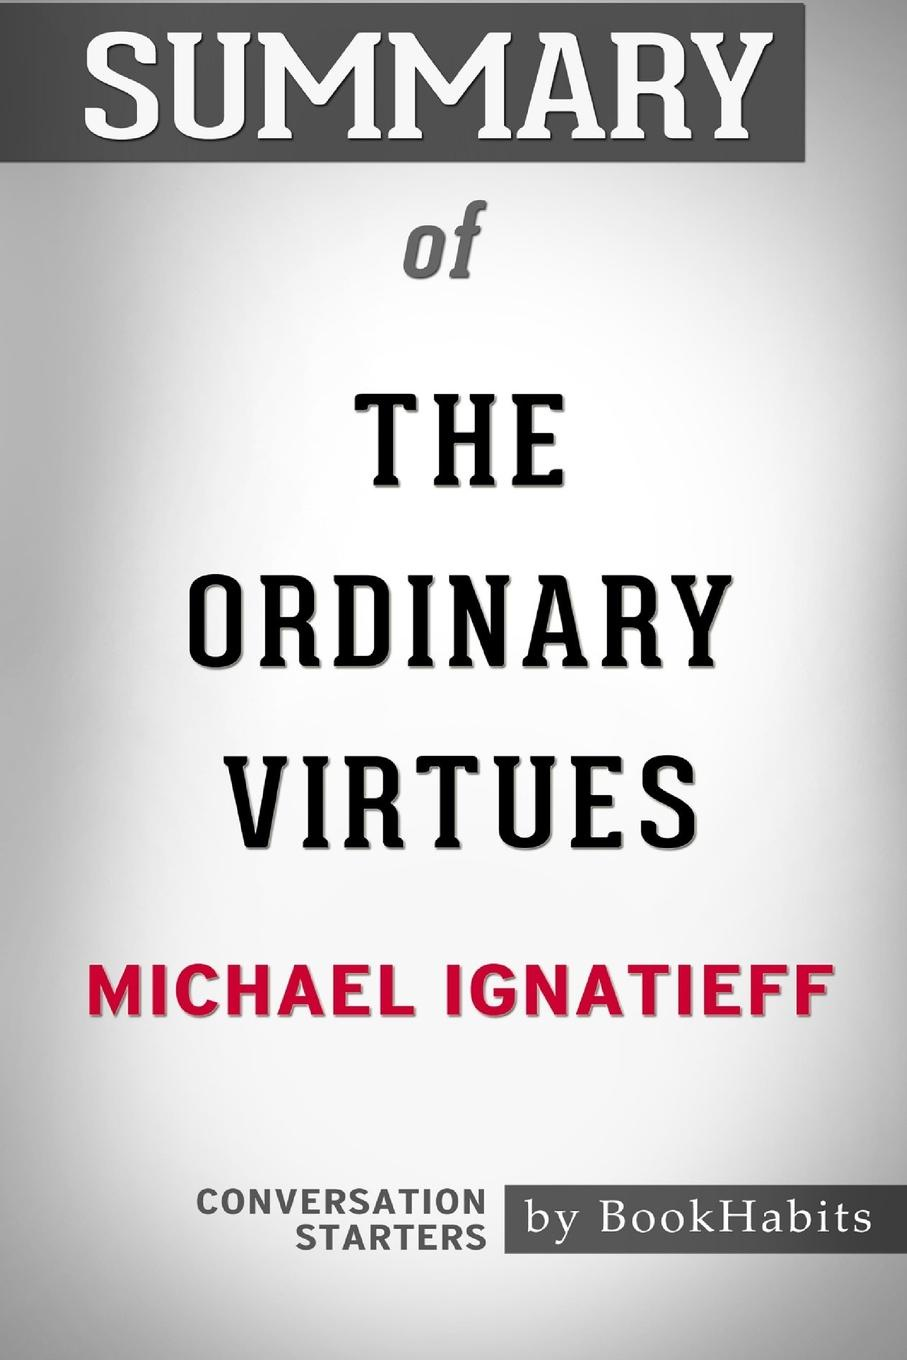 BookHabits Summary of The Ordinary Virtues by Michael Ignatieff. Conversation Starters